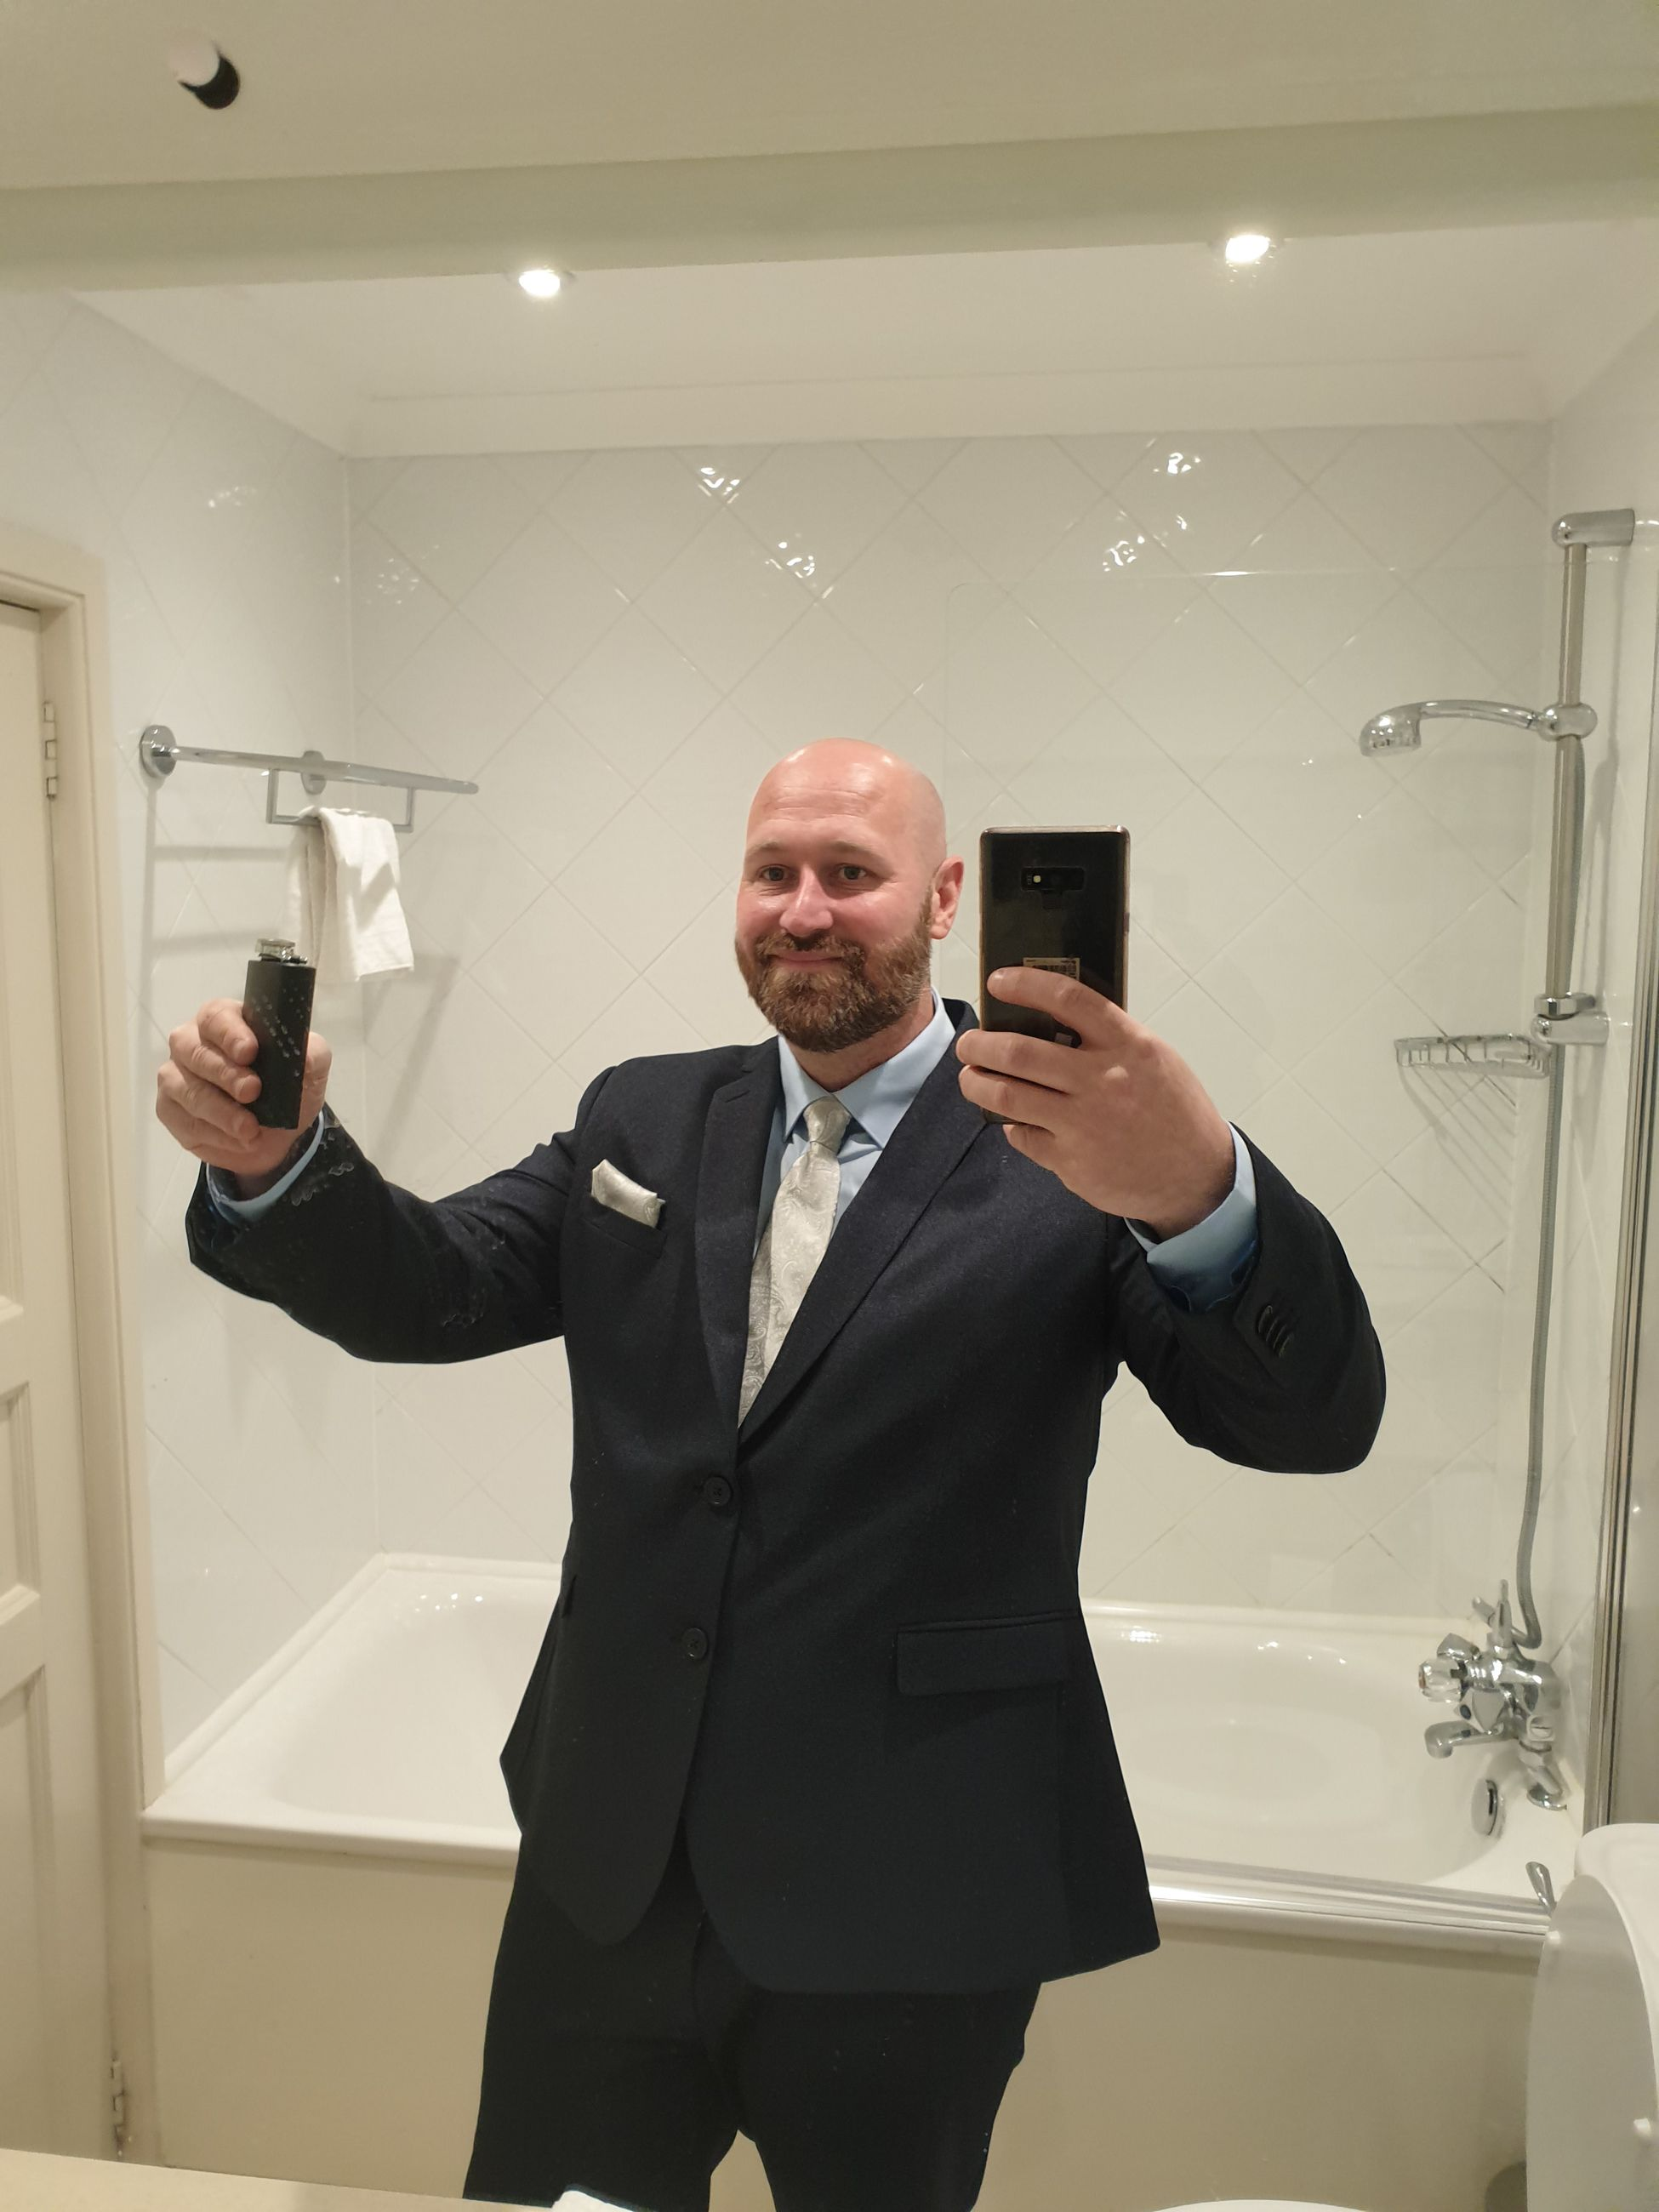 one person, males, standing, front view, bathroom, men, indoors, holding, adult, real people, mirror, mobile phone, home, business, communication, technology, reflection, mature men, domestic bathroom, mature adult, wireless technology